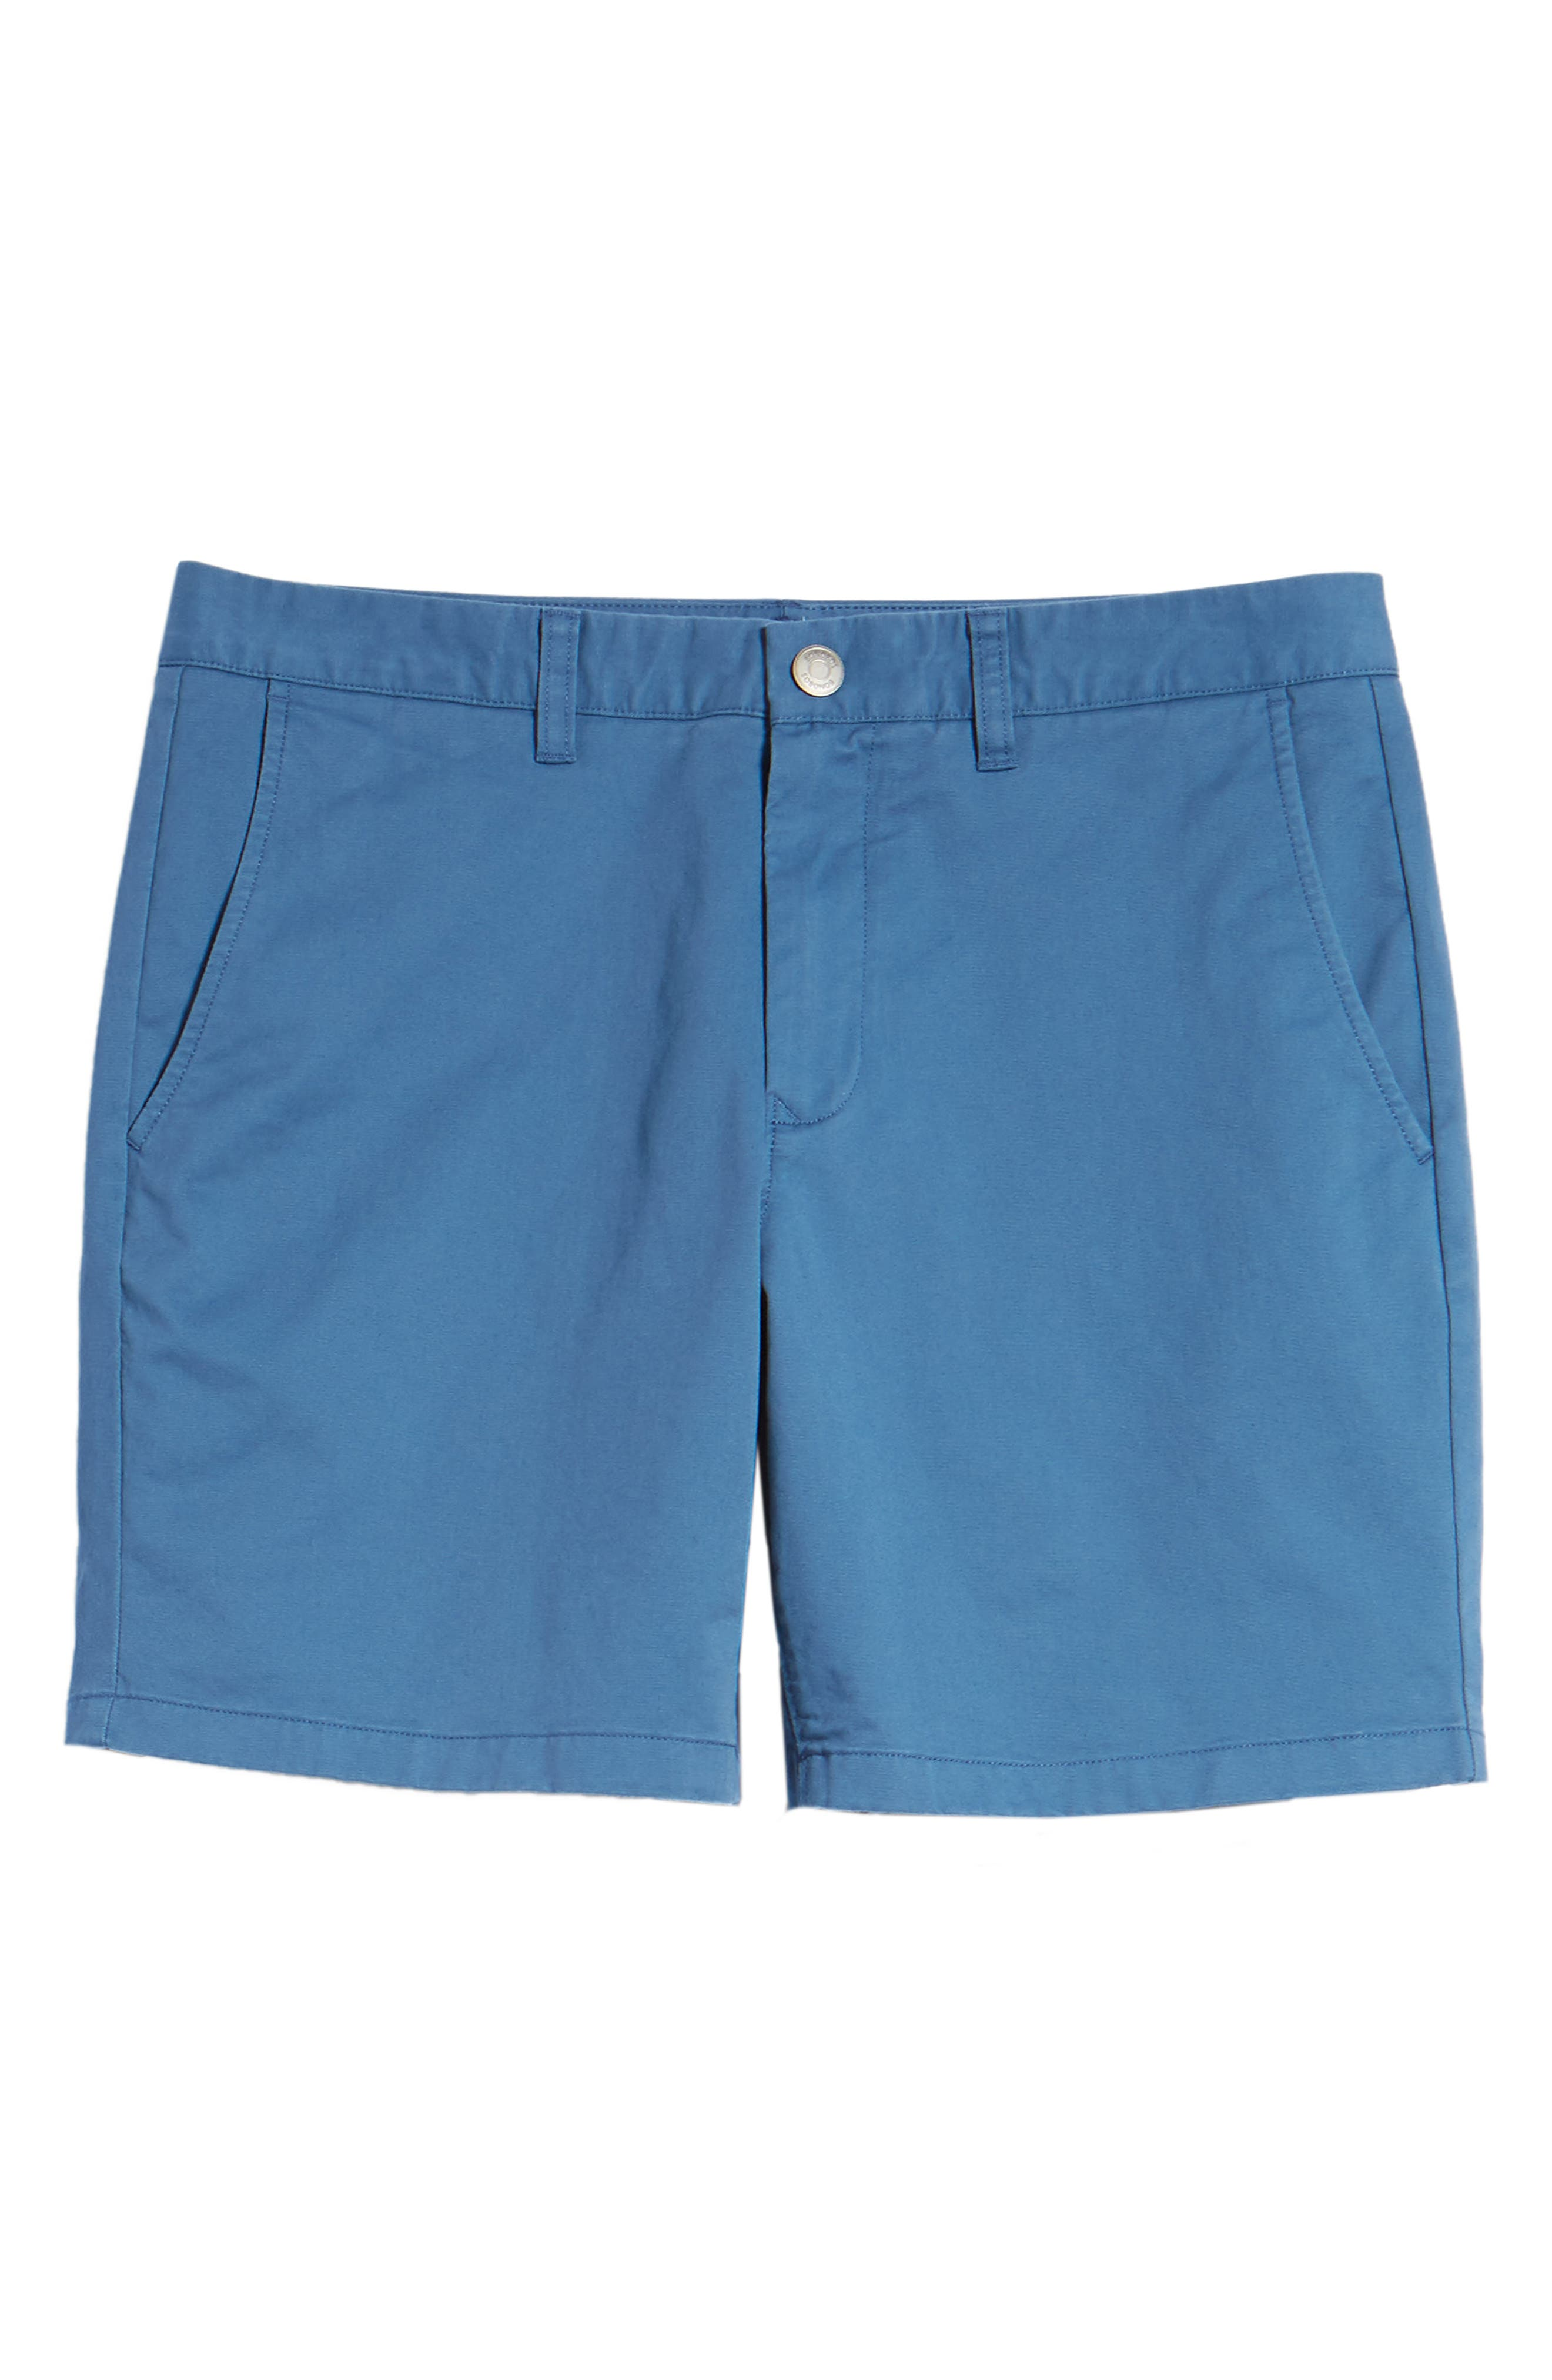 Stretch Washed Chino 7-Inch Shorts,                             Alternate thumbnail 114, color,